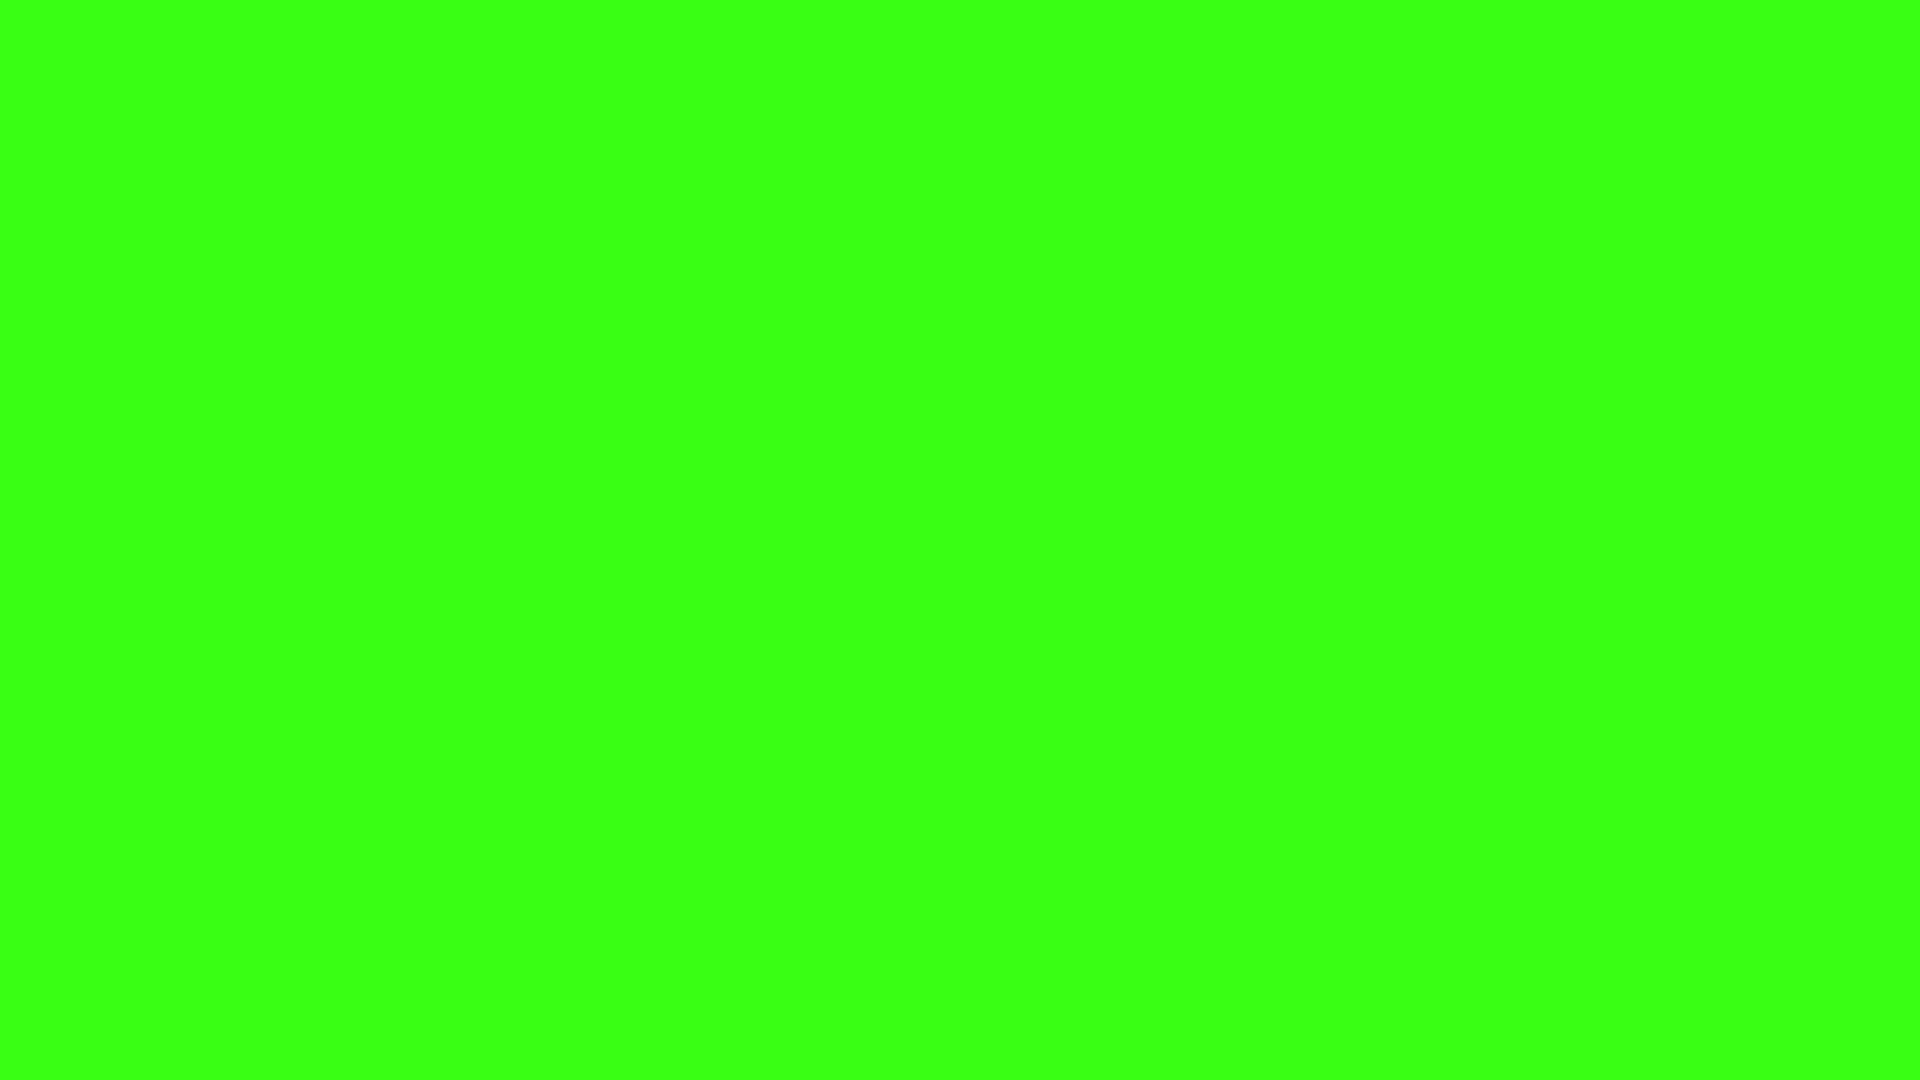 Cute Neon Green Wallpaper Green solid color background 1920x1080